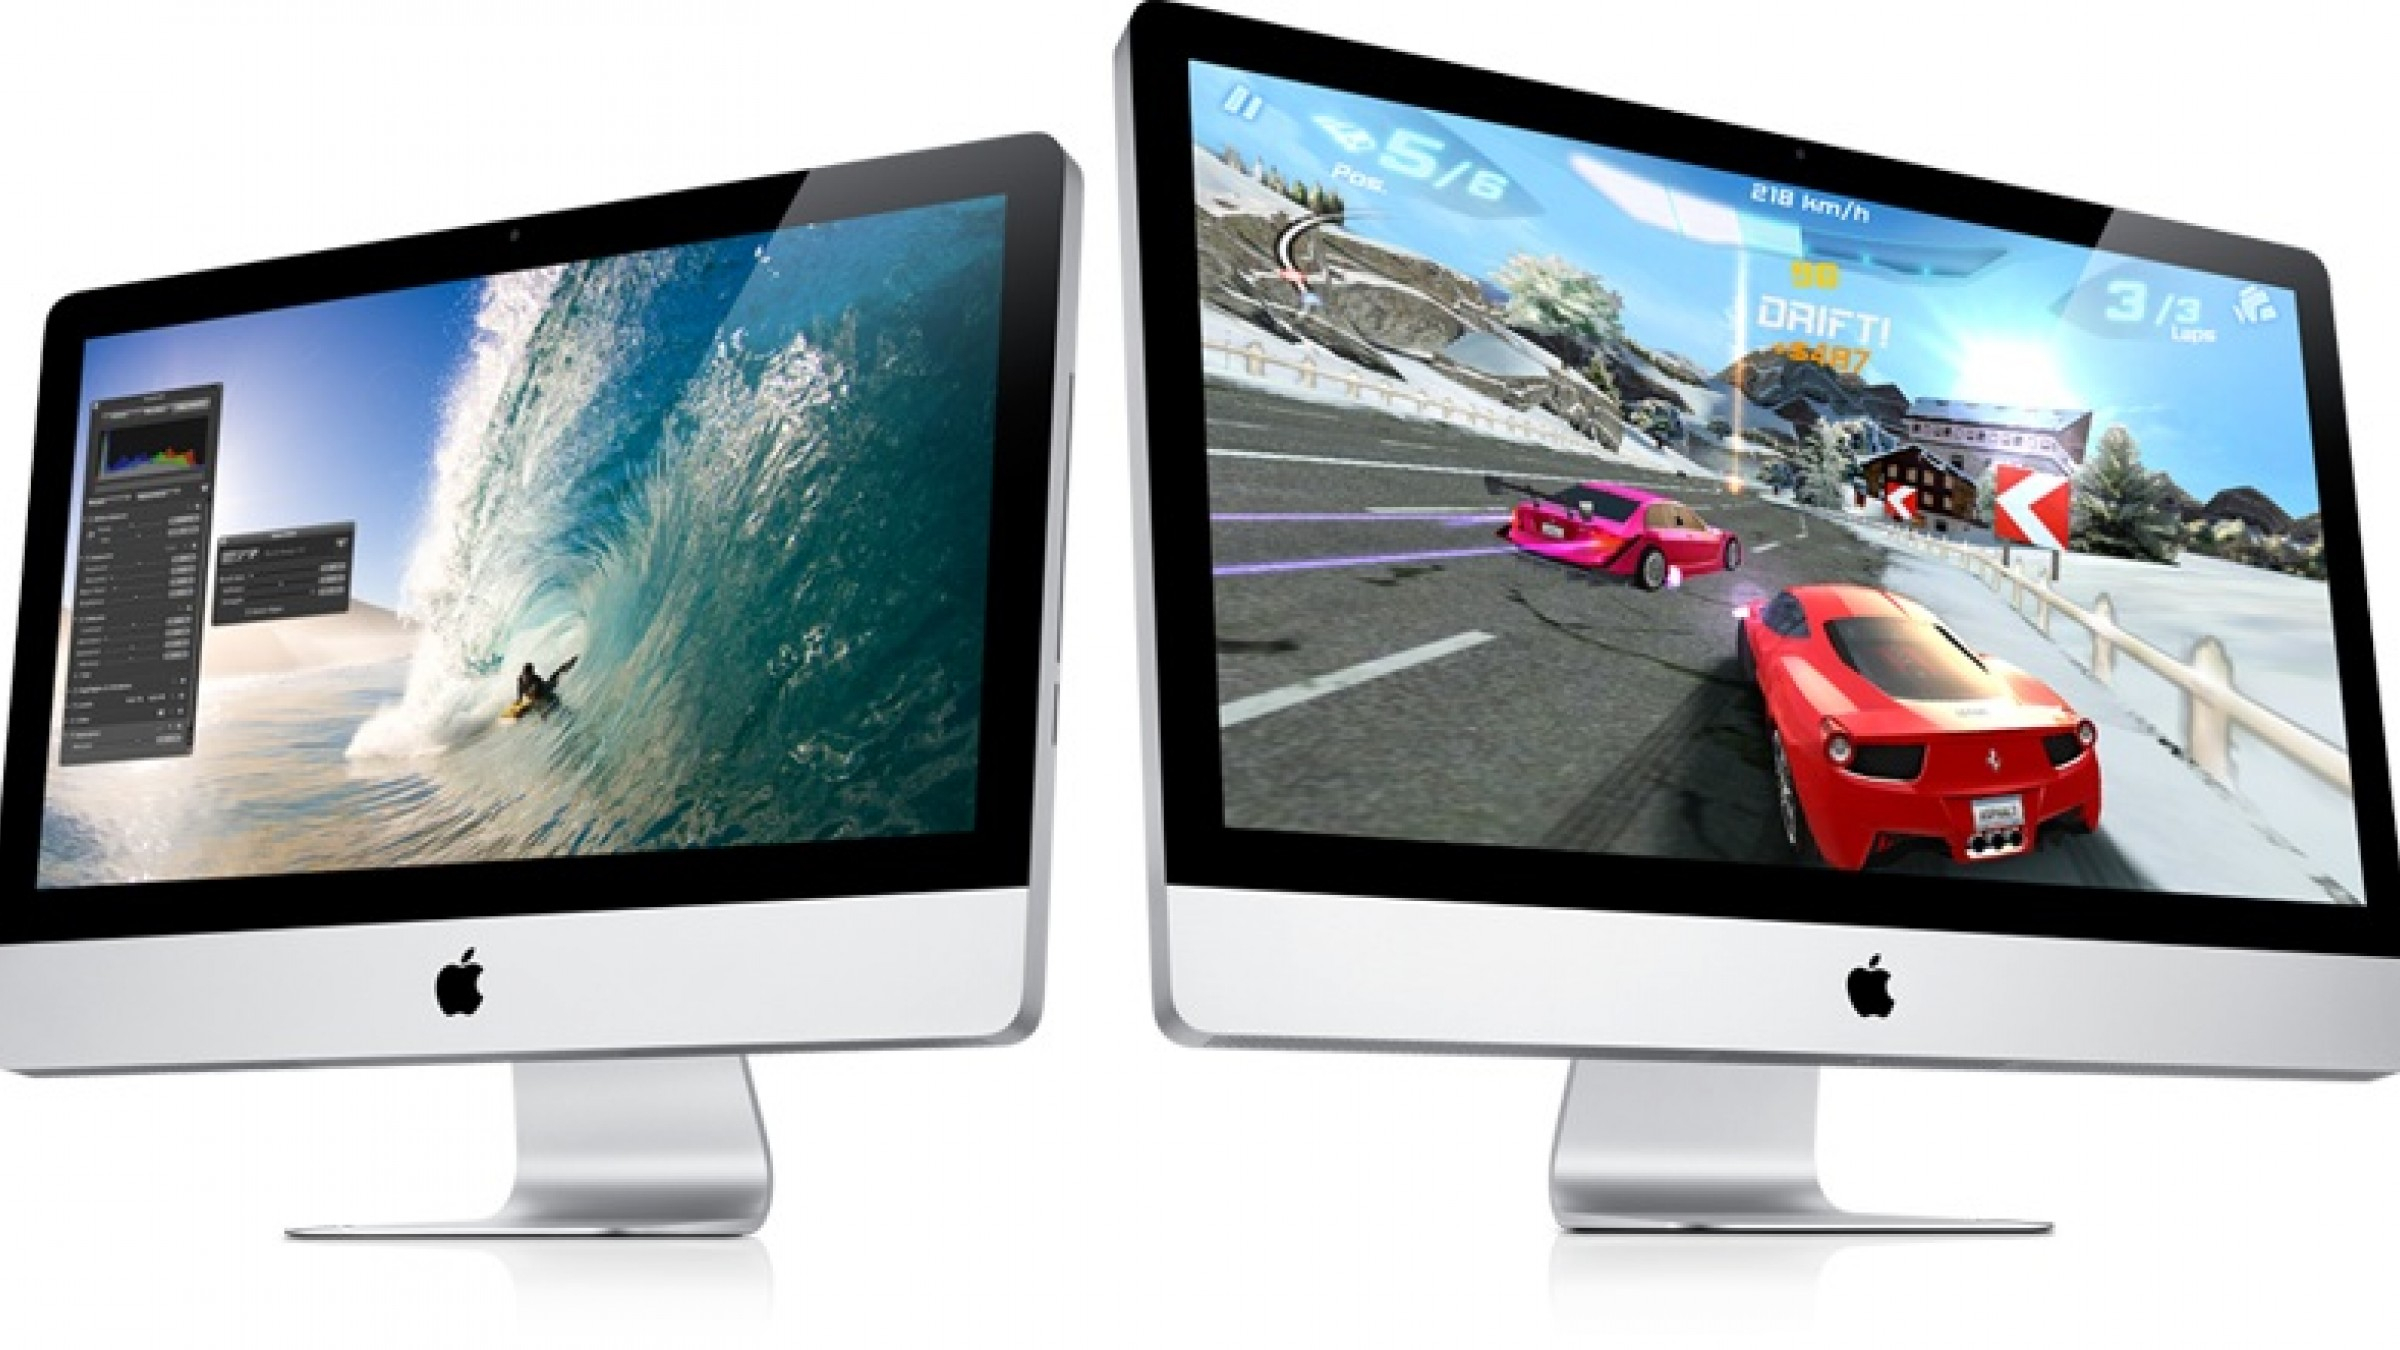 Still Waiting on a New Mac Pro? 2012 iMac Beats Mac Pro in DaVinci